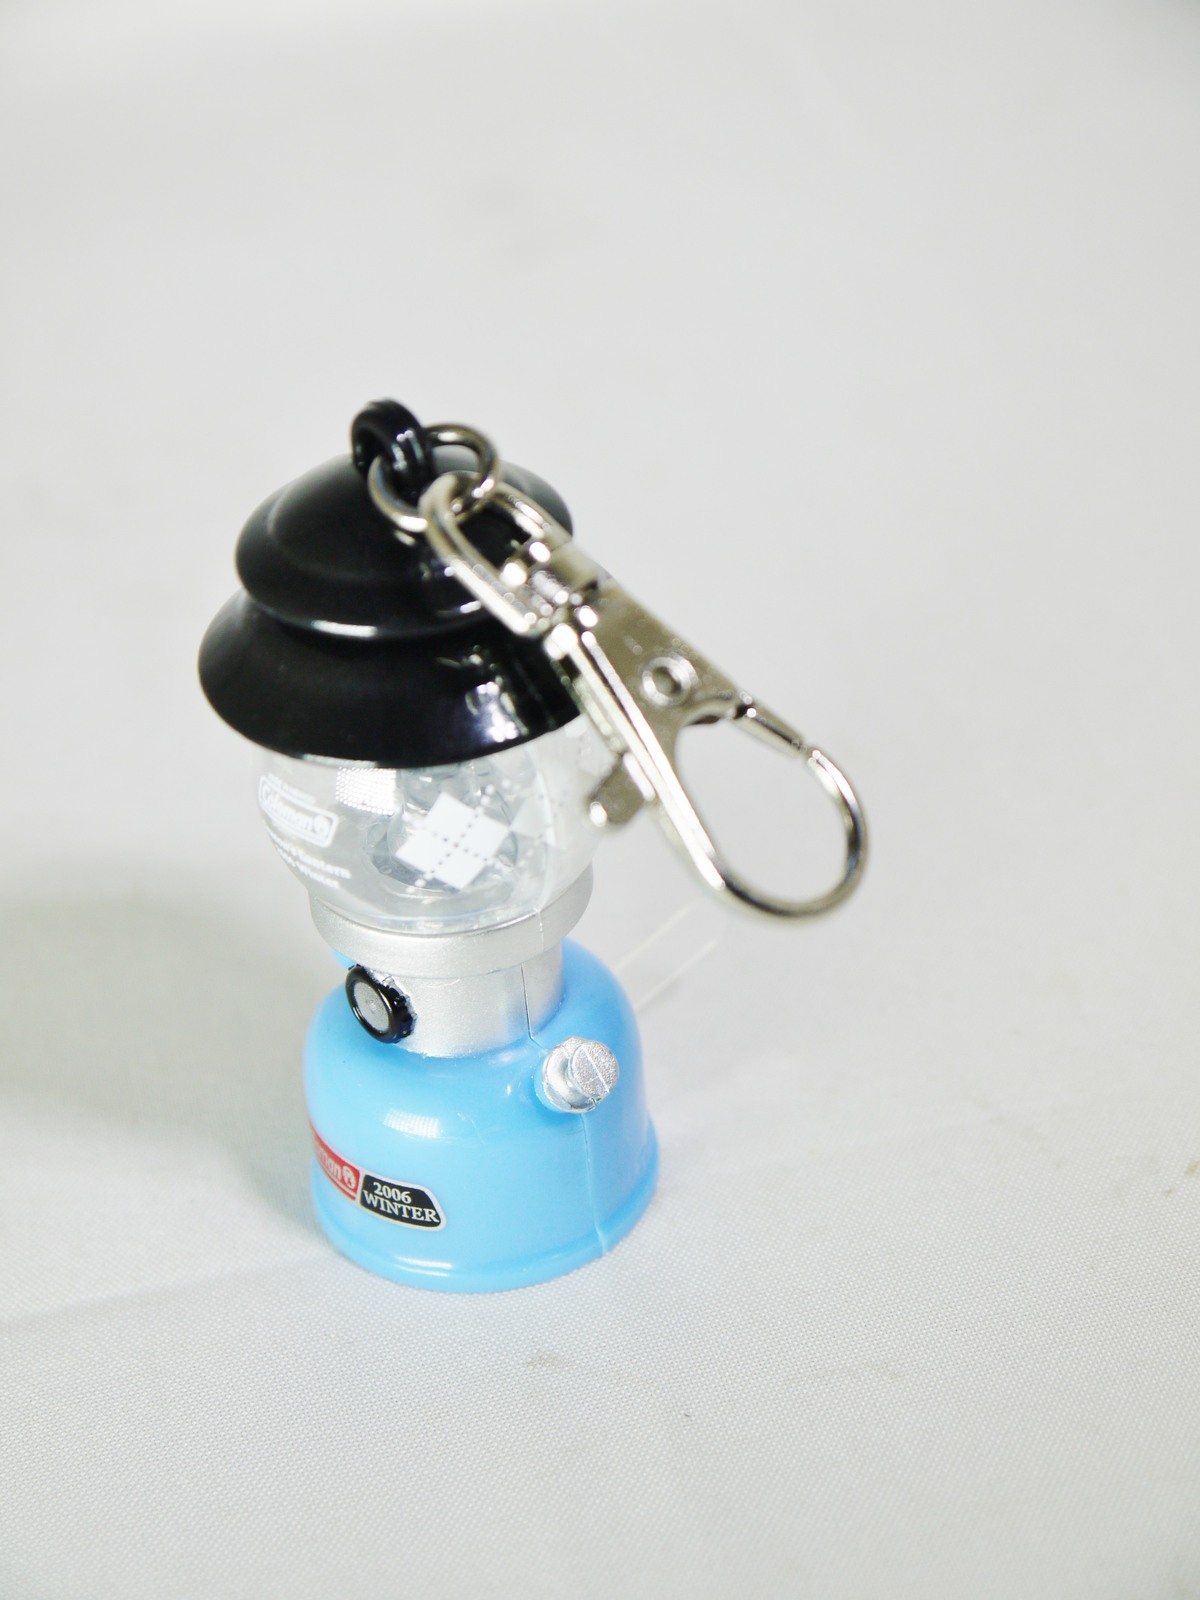 TAKARA TOMY ARTS Coleman LANTERN MUSEUM SEASON COLLECTION VOL 1 2006 LED BLUE